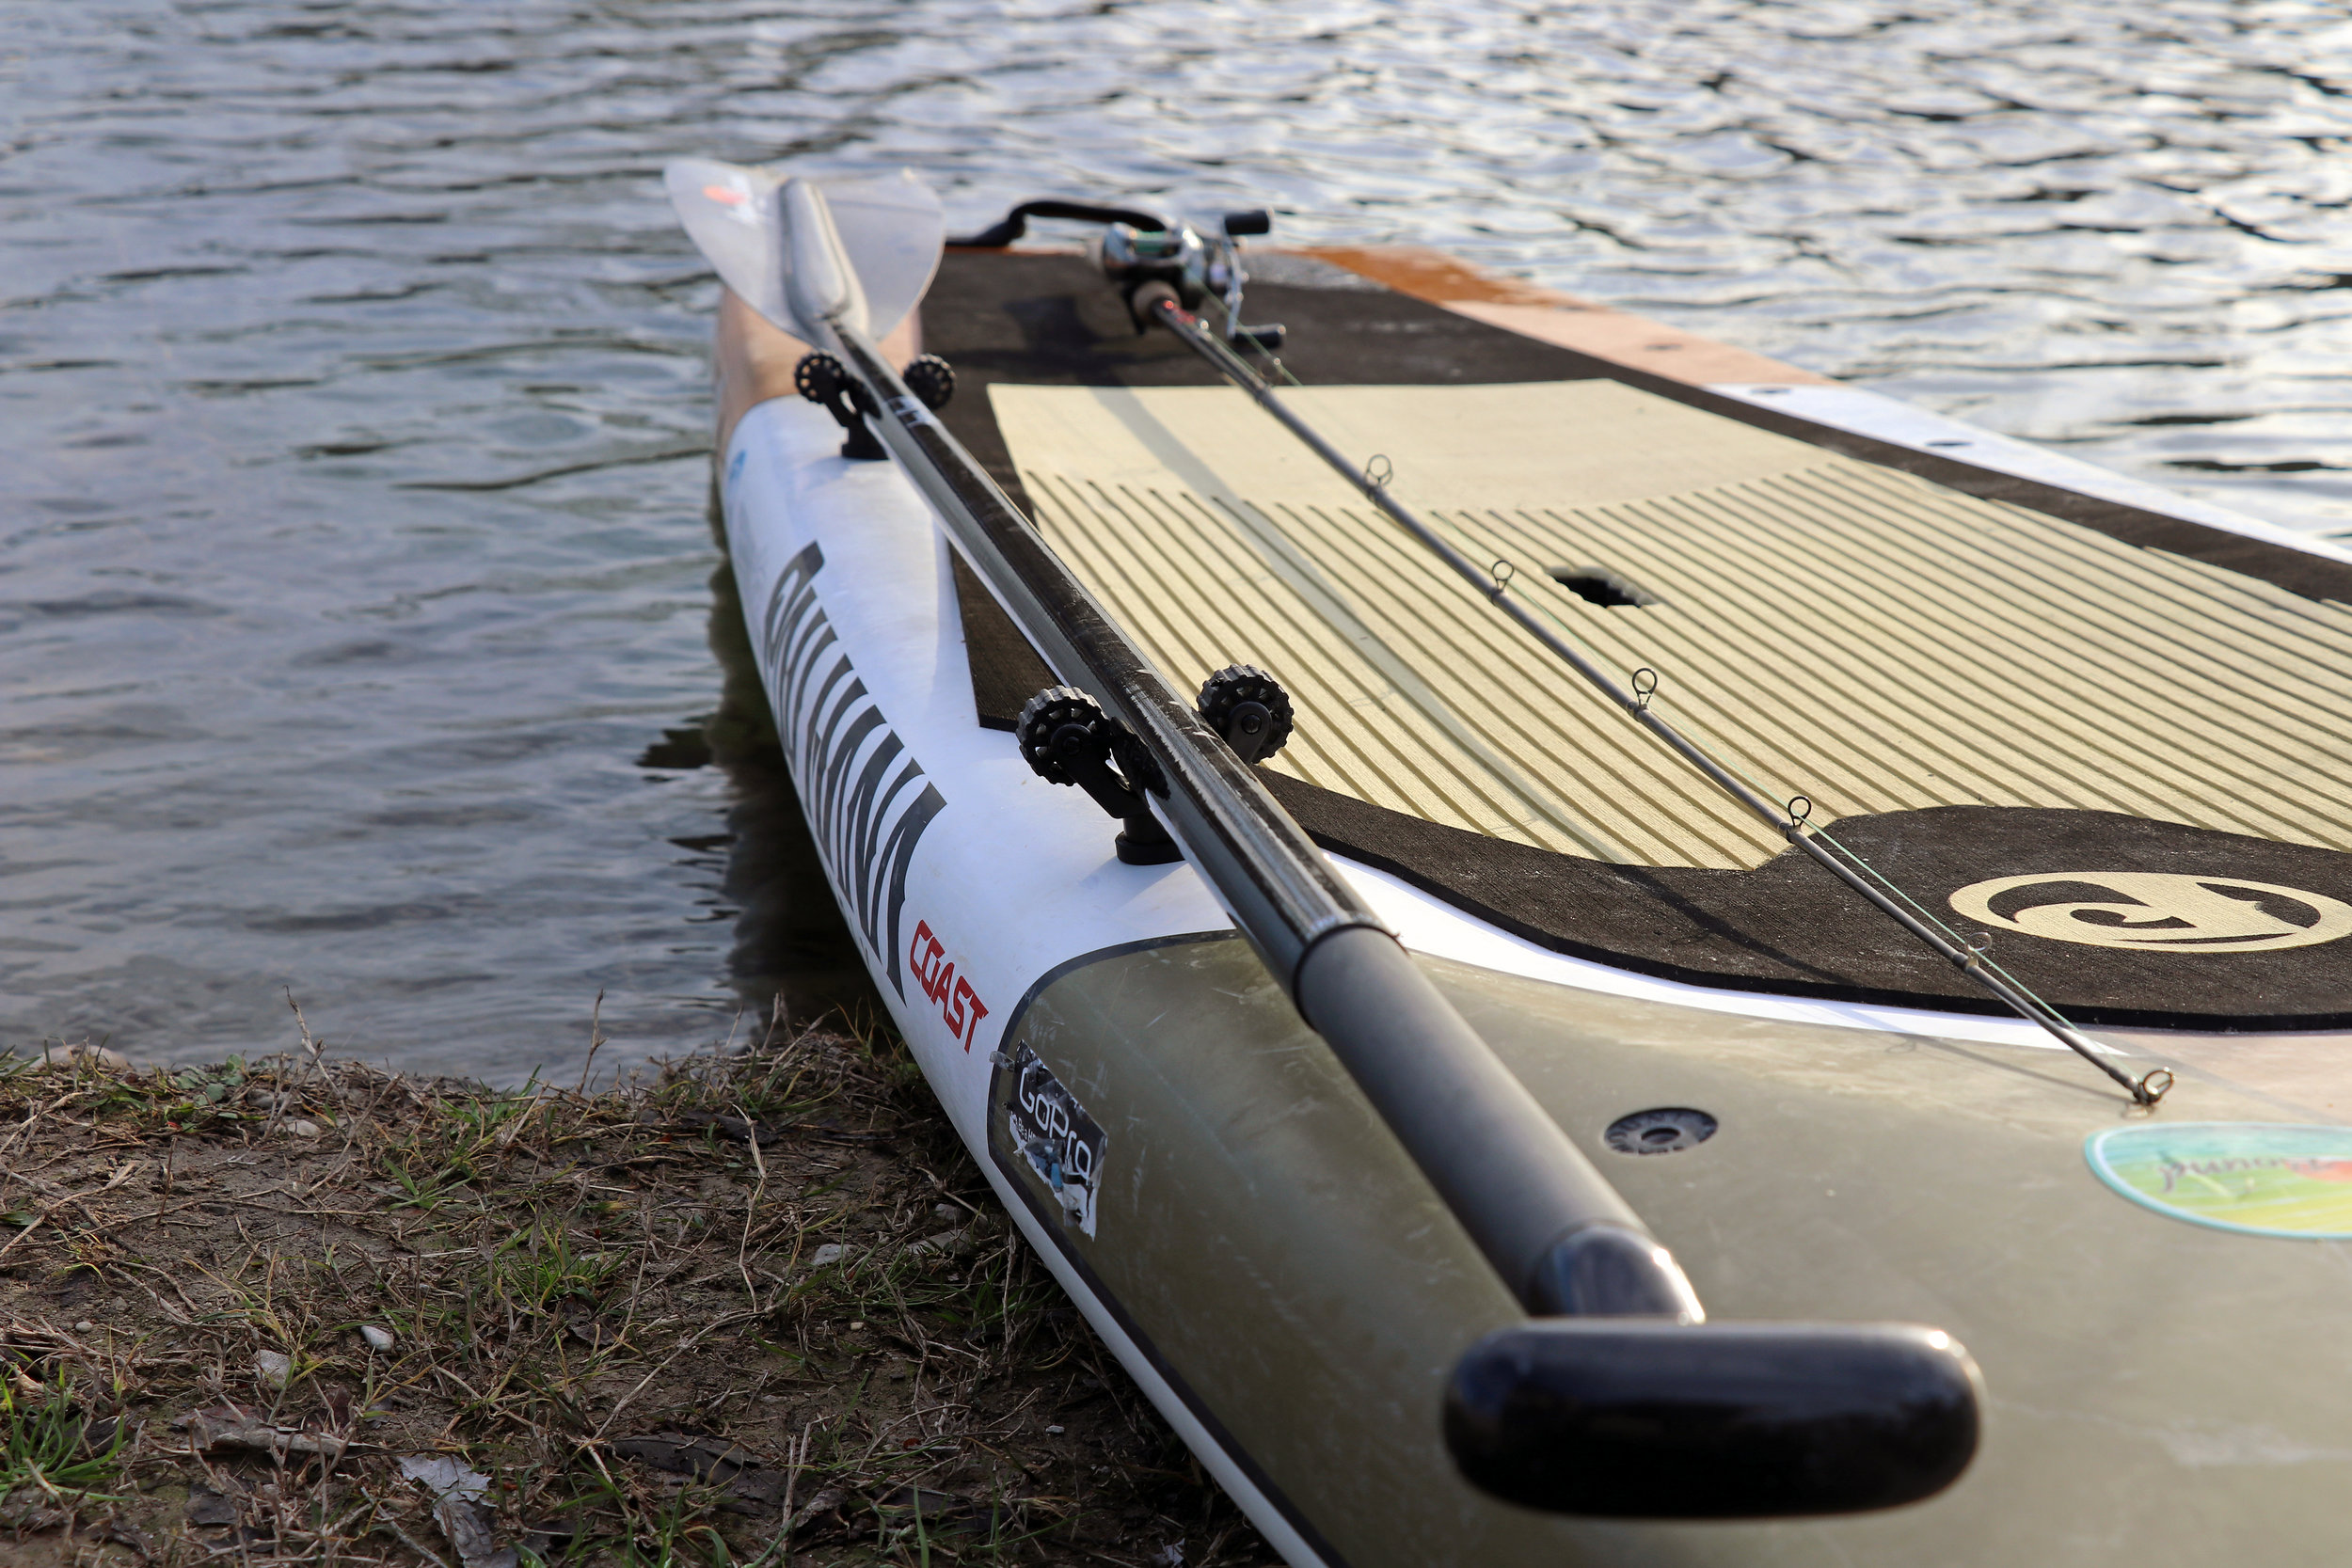 The Pau Hana Endurance is a unique SUP that offers multiple threaded inserts to attached paddle holders, rod holders, cup holders, GoPro mounts, etc.